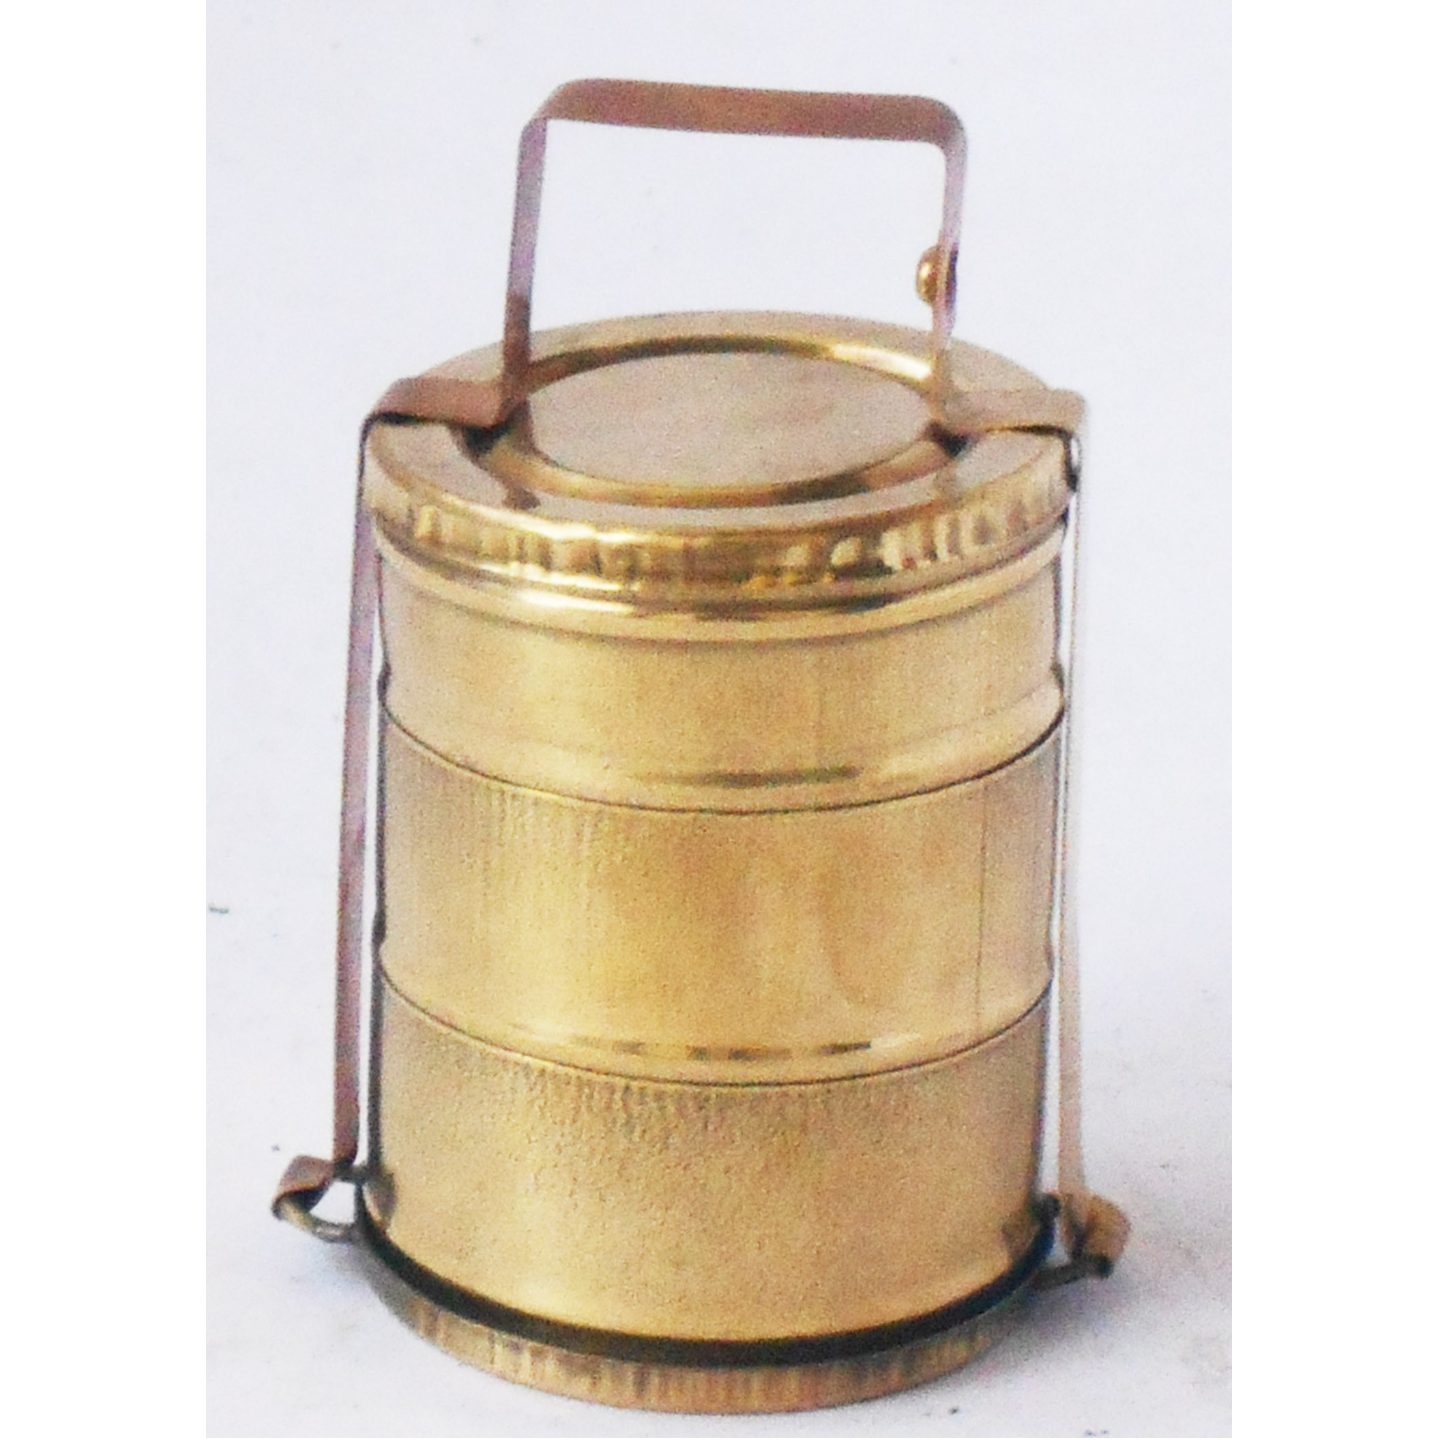 Brass Lunch Box Small Miniature Toy For Children Playing -1.6*1.6*3.5 Inch (Z370 E)